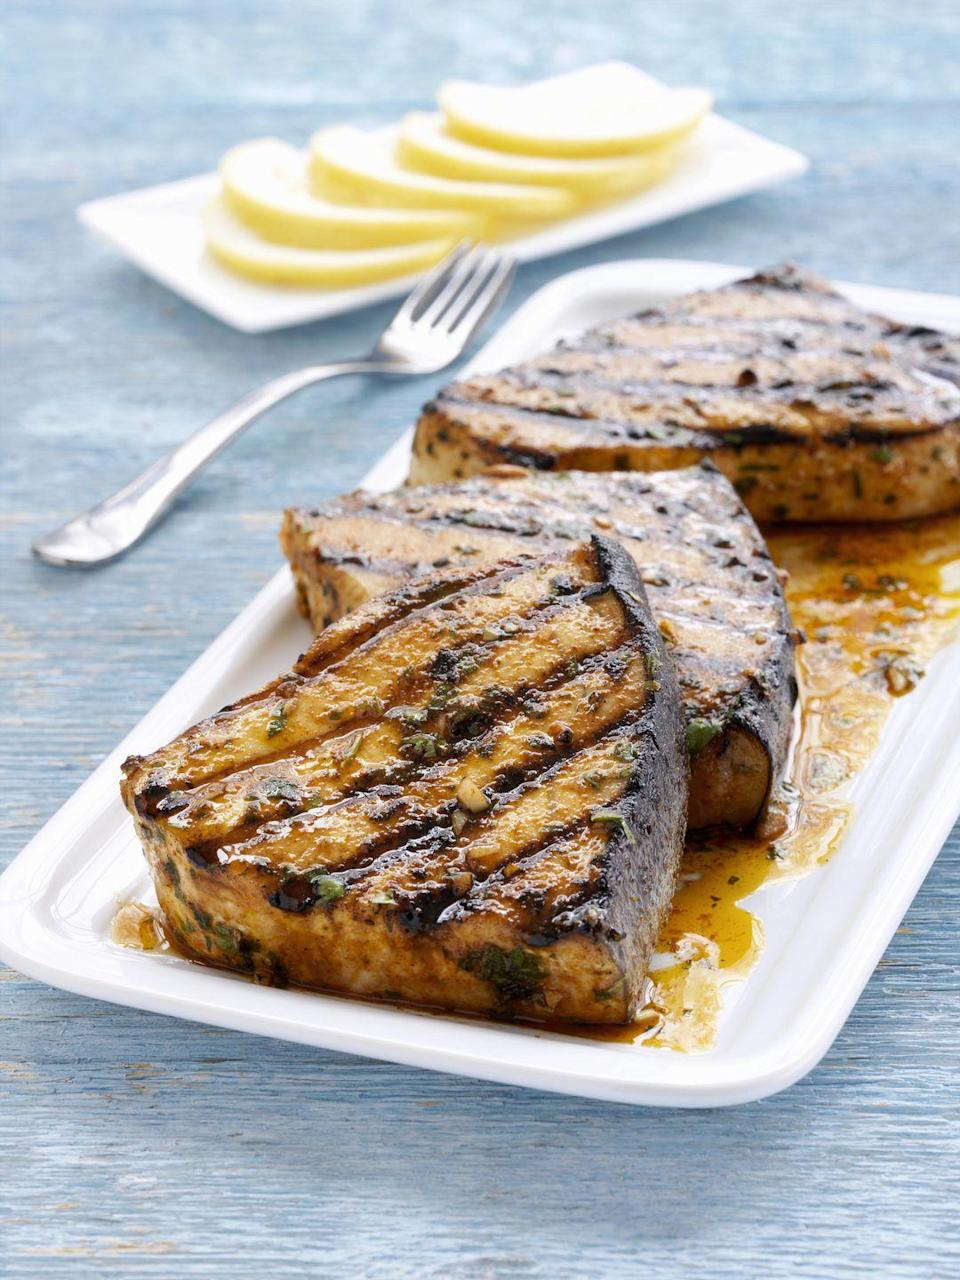 """<p>If you're a meat lover who's trying to add more fish to your diet, look no further. Available both fresh and frozen, this low-calorie billfish (3 ounces contains approximately 146 calories and 566 IU of vitamin D) is actually referred to as steak for its meaty texture. Plus, swordfish has a mild, sweet flavor, takes only minutes to cook (usually less than 10 minutes), and is quite versatile since it can be grilled, baked, broiled, and pan-roasted. (Just make sure to eat sparingly, as <a href=""""https://www.nrdc.org/stories/mercury-guide"""" rel=""""nofollow noopener"""" target=""""_blank"""" data-ylk=""""slk:swordfish contains high levels of mercury"""" class=""""link rapid-noclick-resp"""">swordfish contains high levels of mercury</a>.)</p>"""